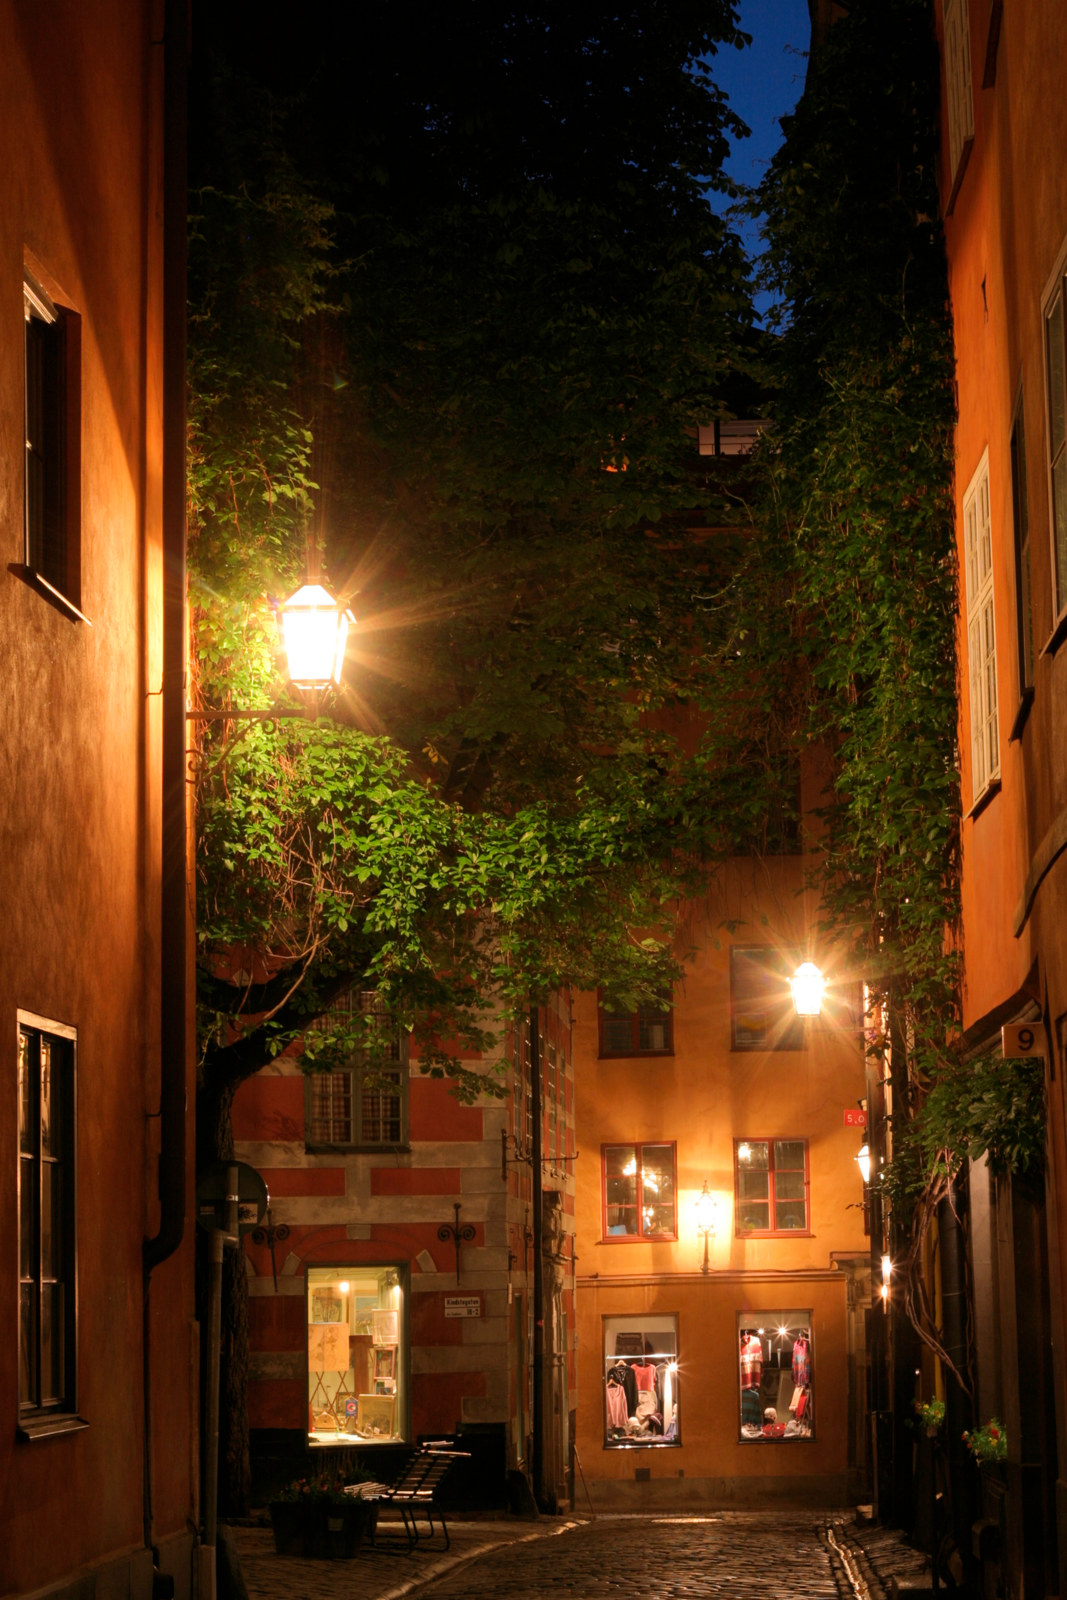 Night in Gamla stan